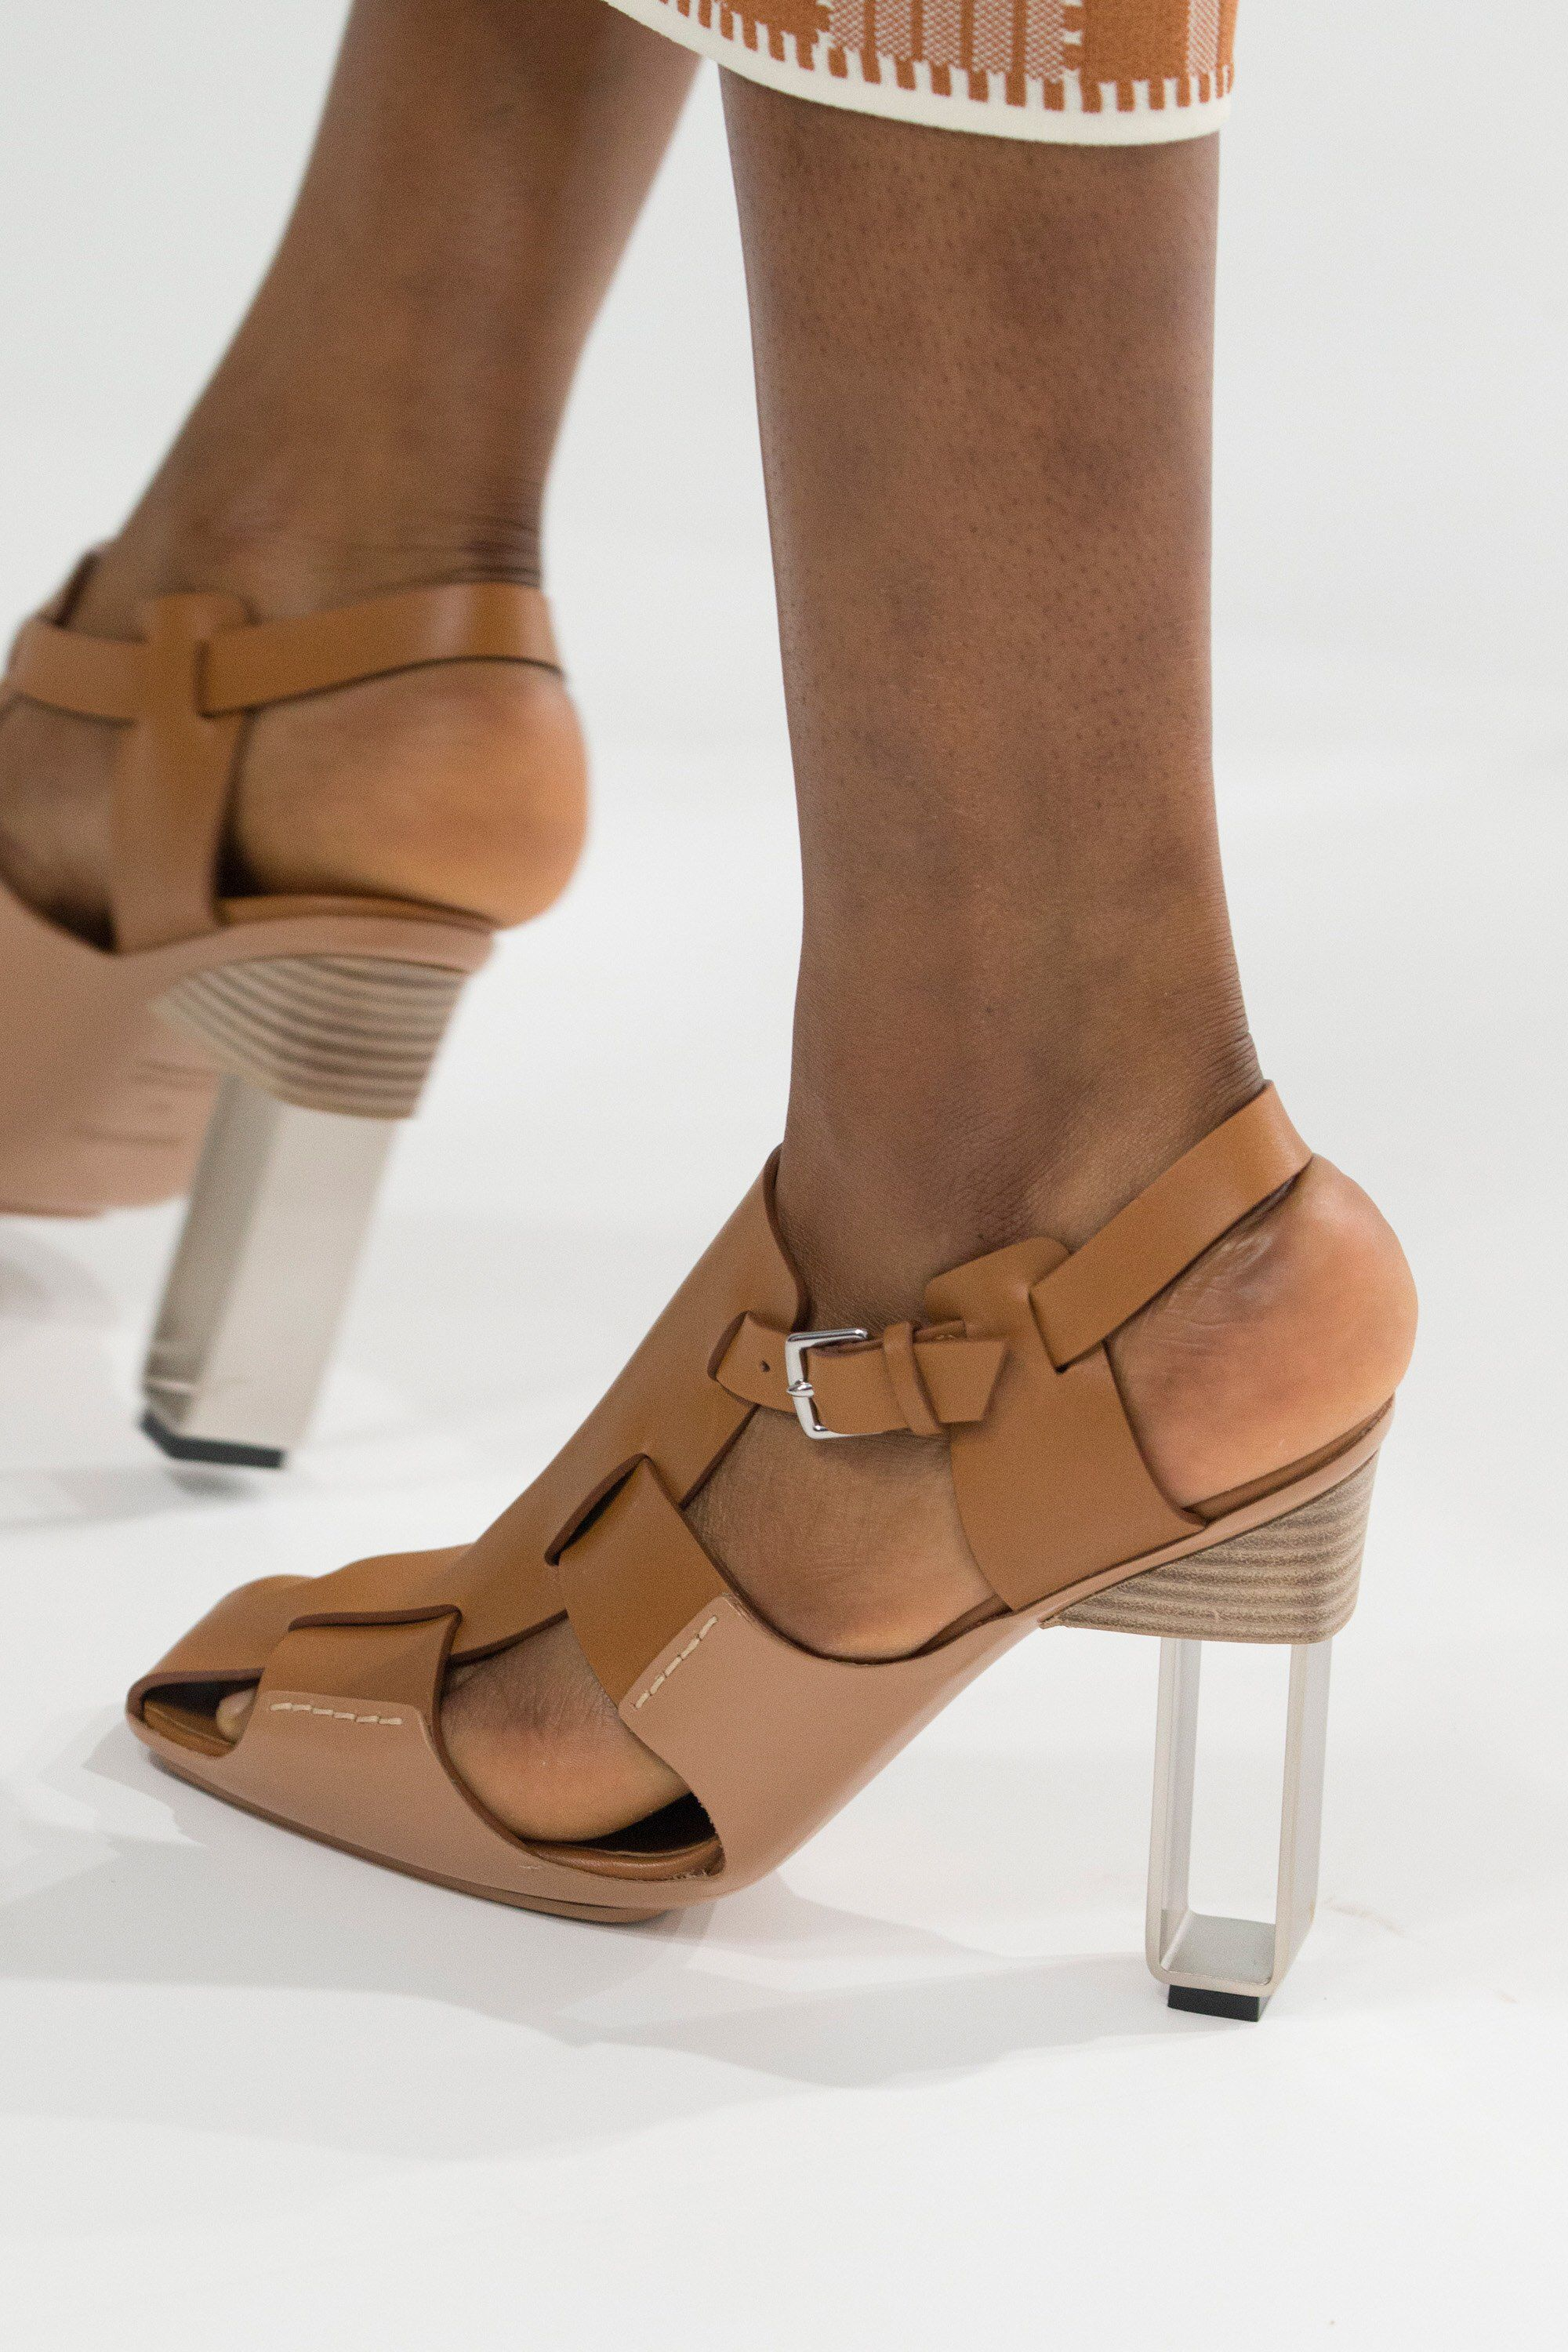 f15ee86073 Hermès Spring 2018 Ready-to-Wear Fashion Show | / SHOES ...